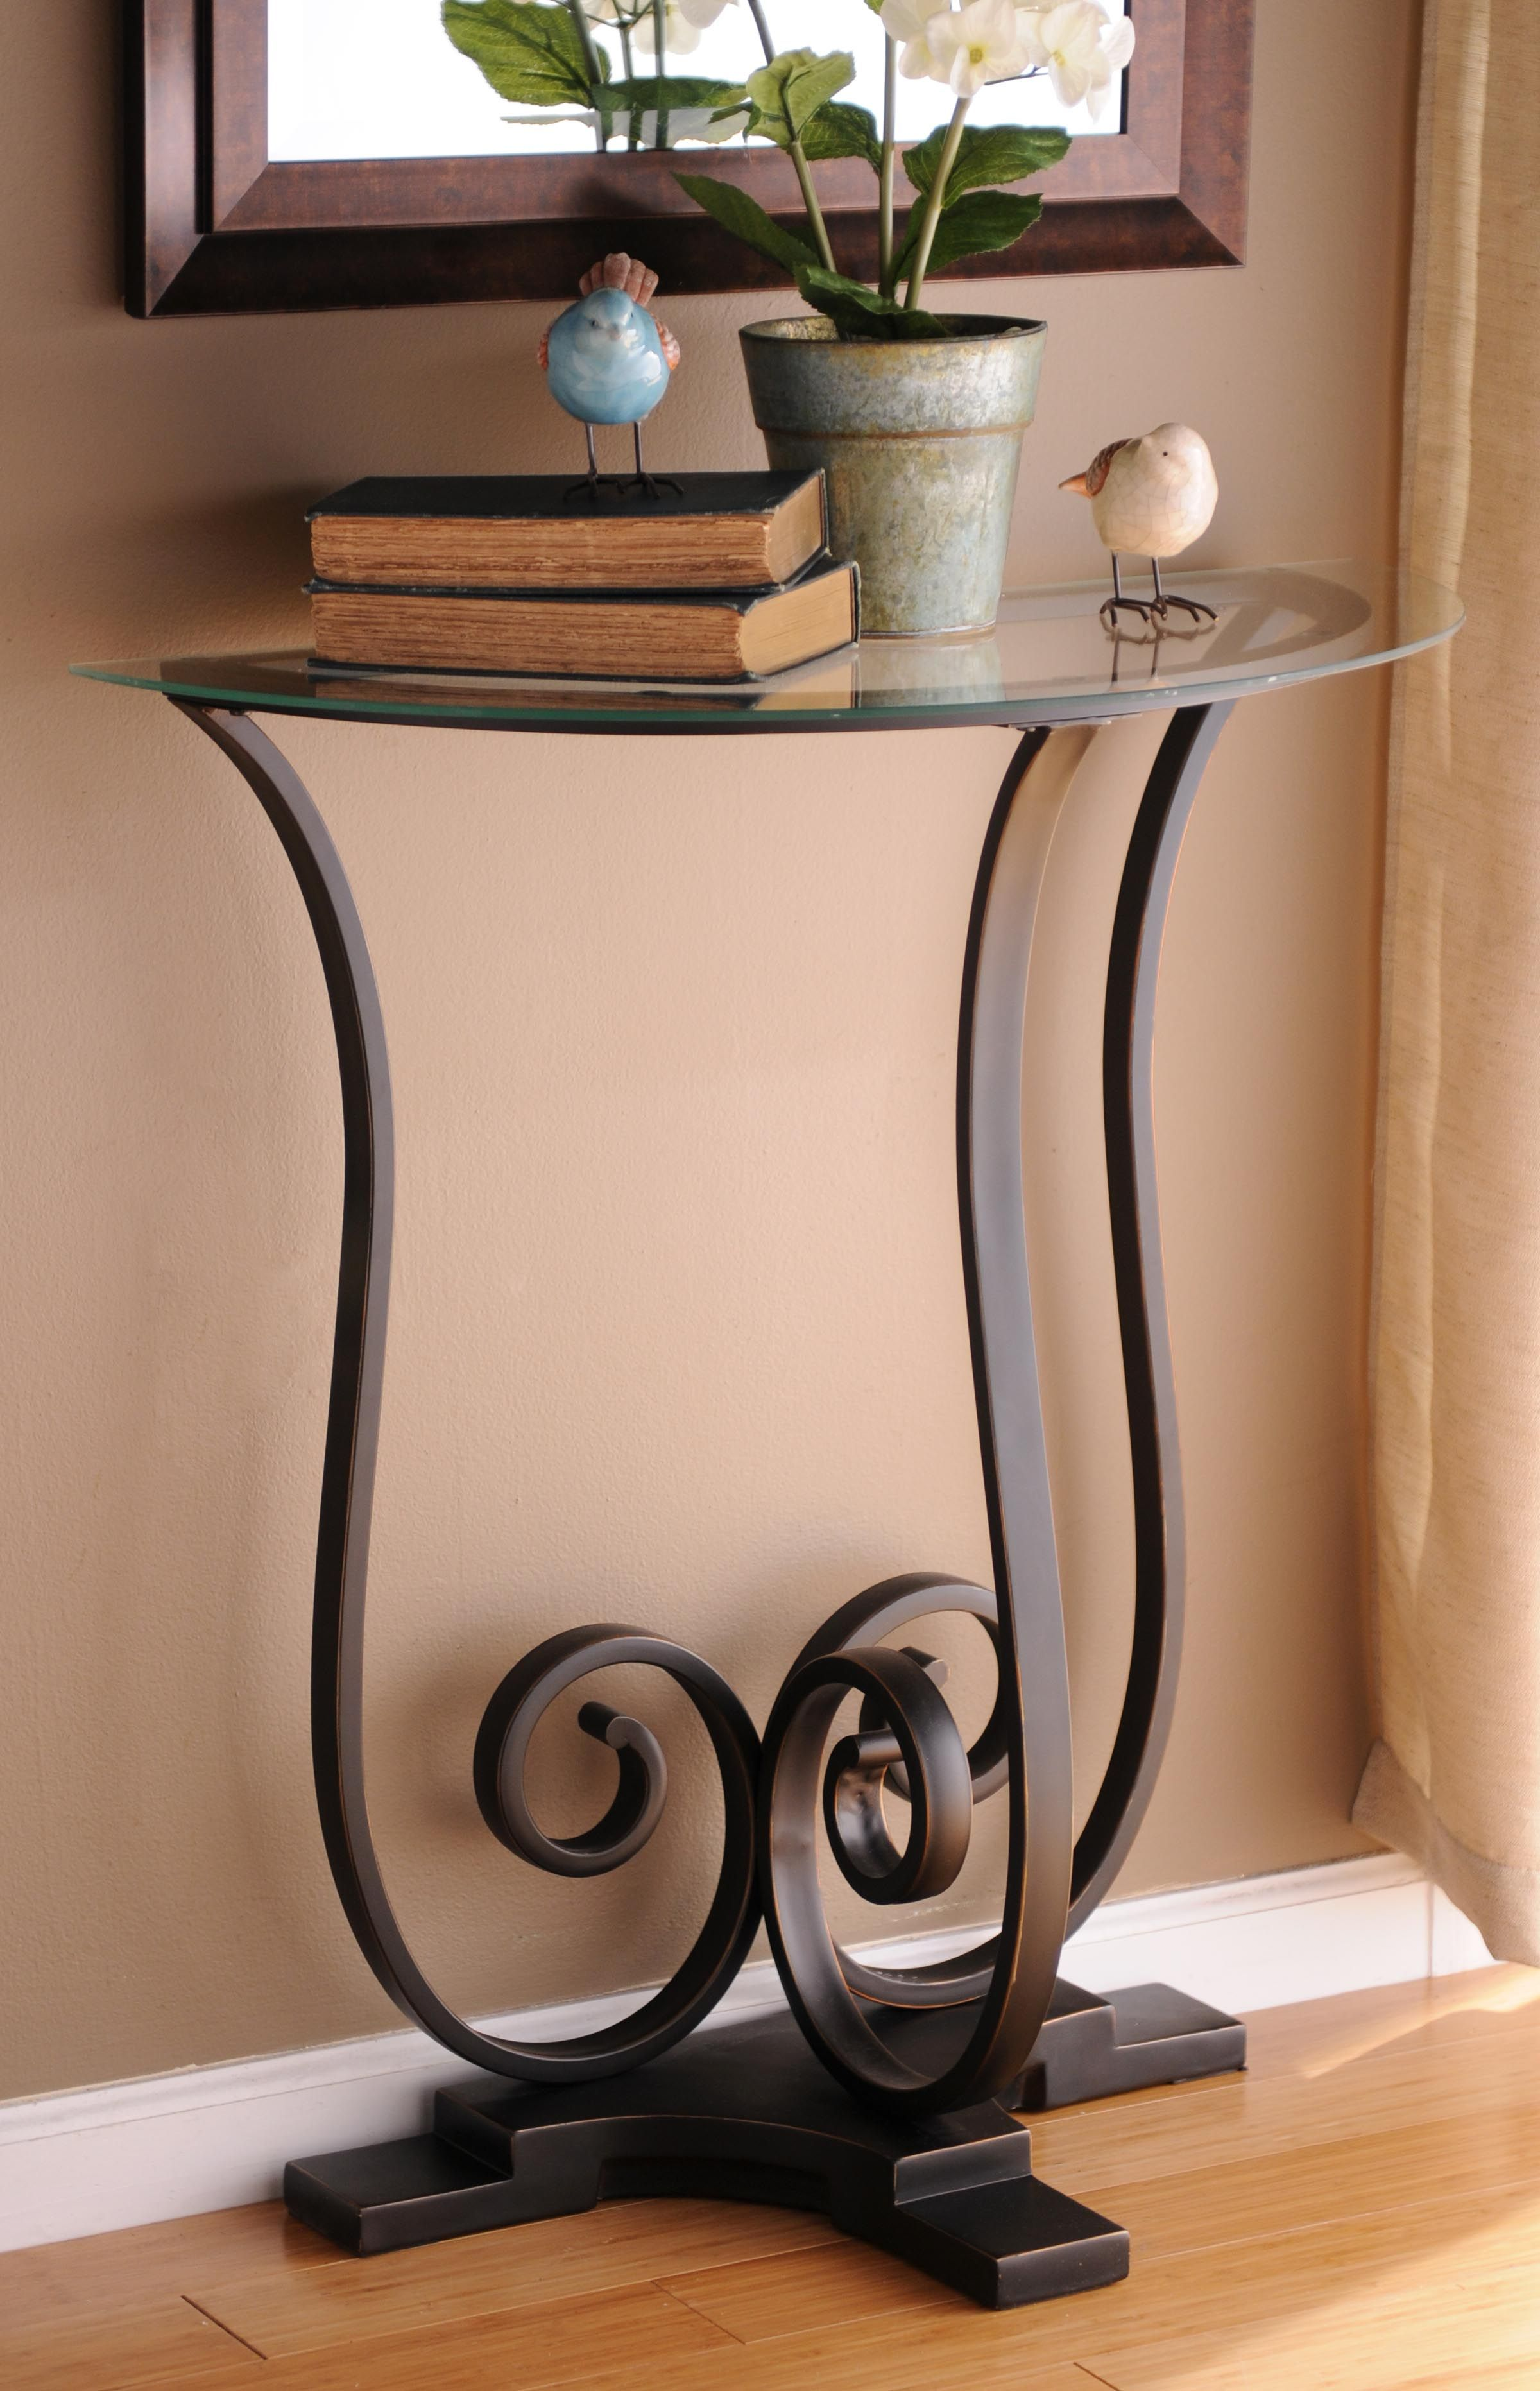 Sophisticated And Stylish This Half Round Console Table Features